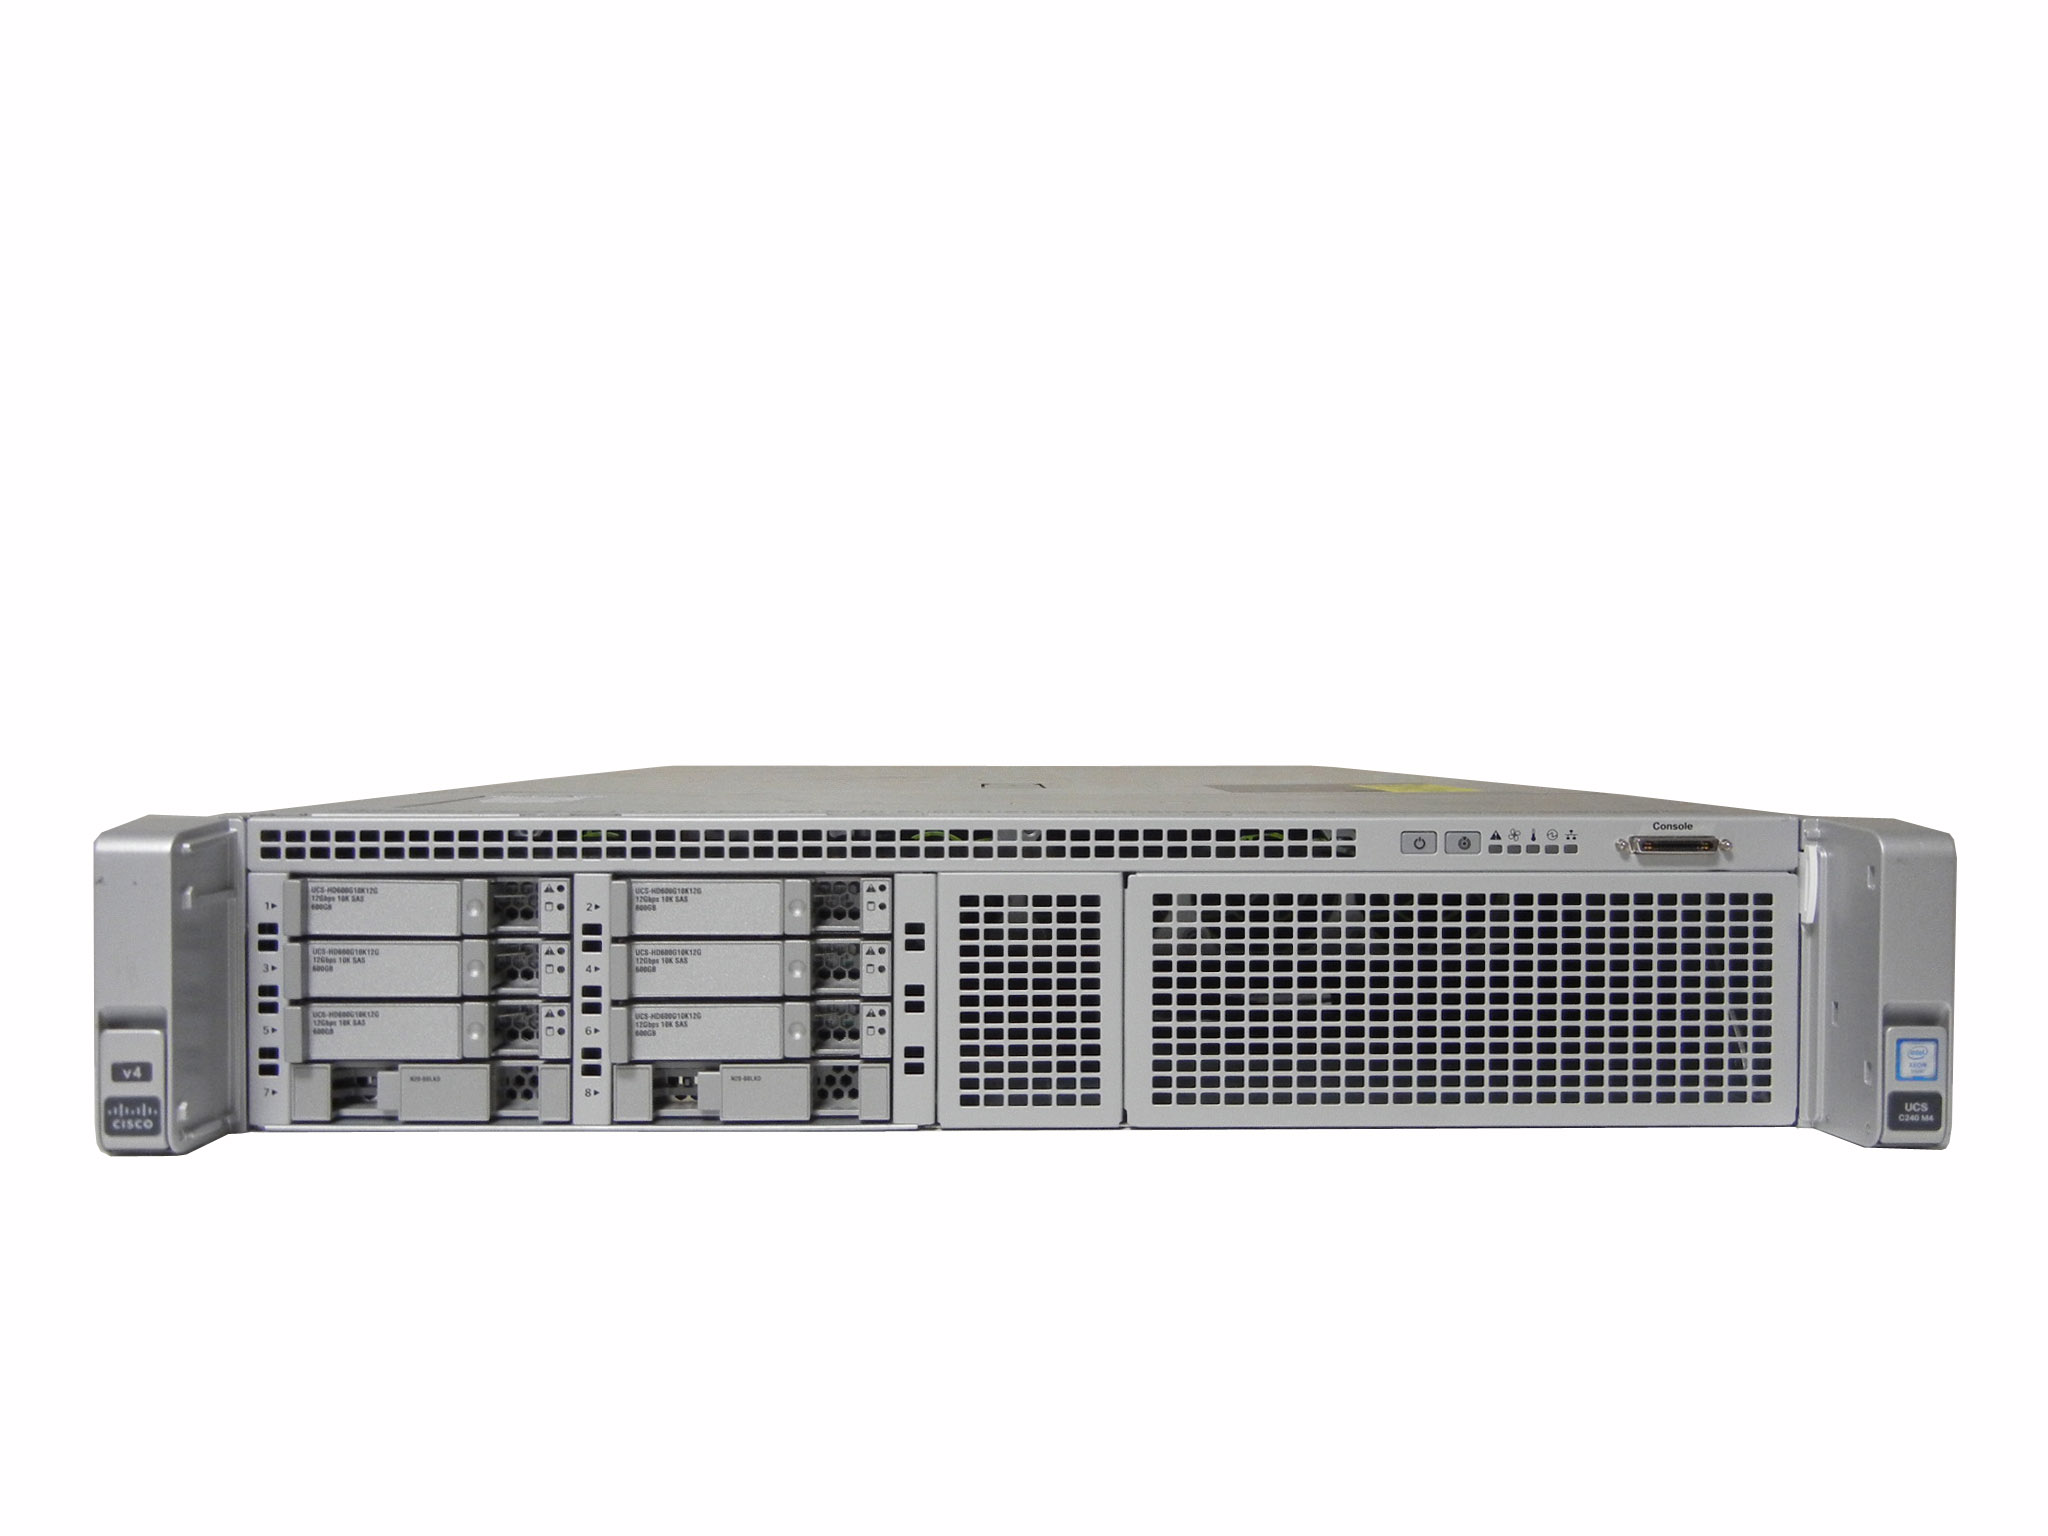 【中古】 Cisco UCS C240 M4 4C Xeon E5-2623 V4 2.60GHz 1CPU/ 24GB / 300GB x6 SAS 2.5in 10K / 電源 x2